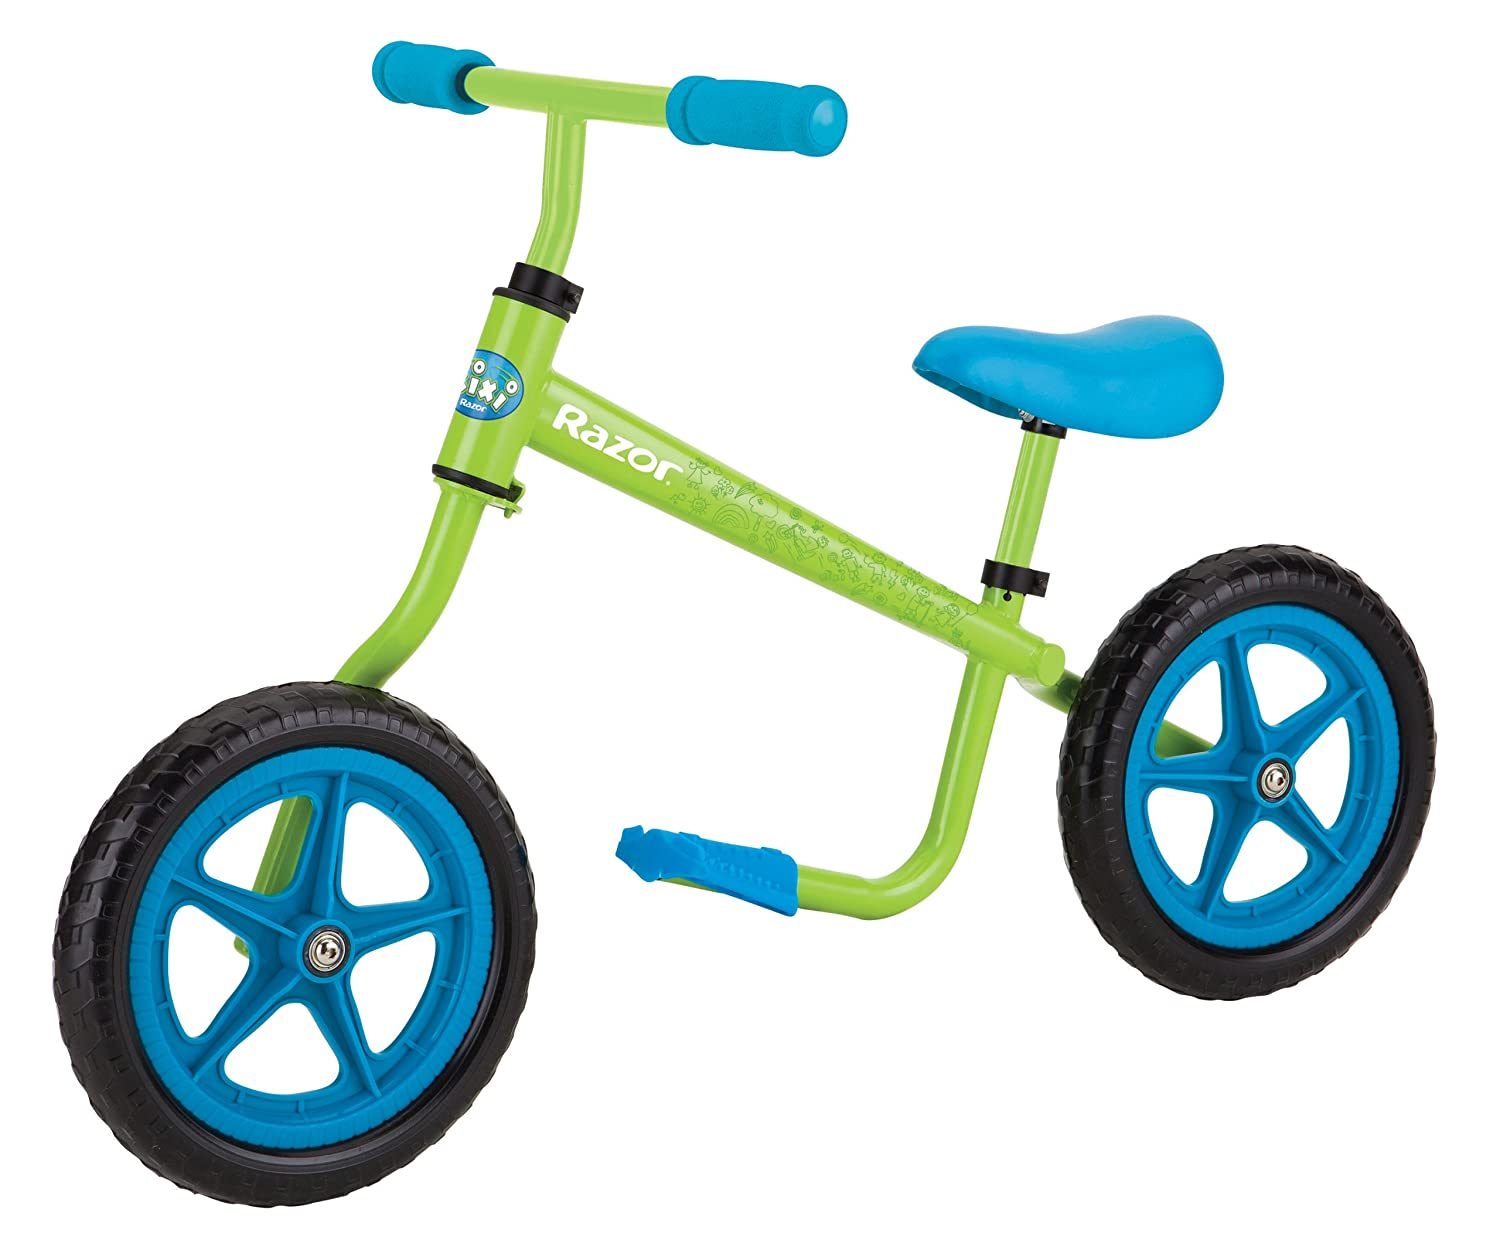 Razor Kixi Balance Bike, Blue/Green 15059630